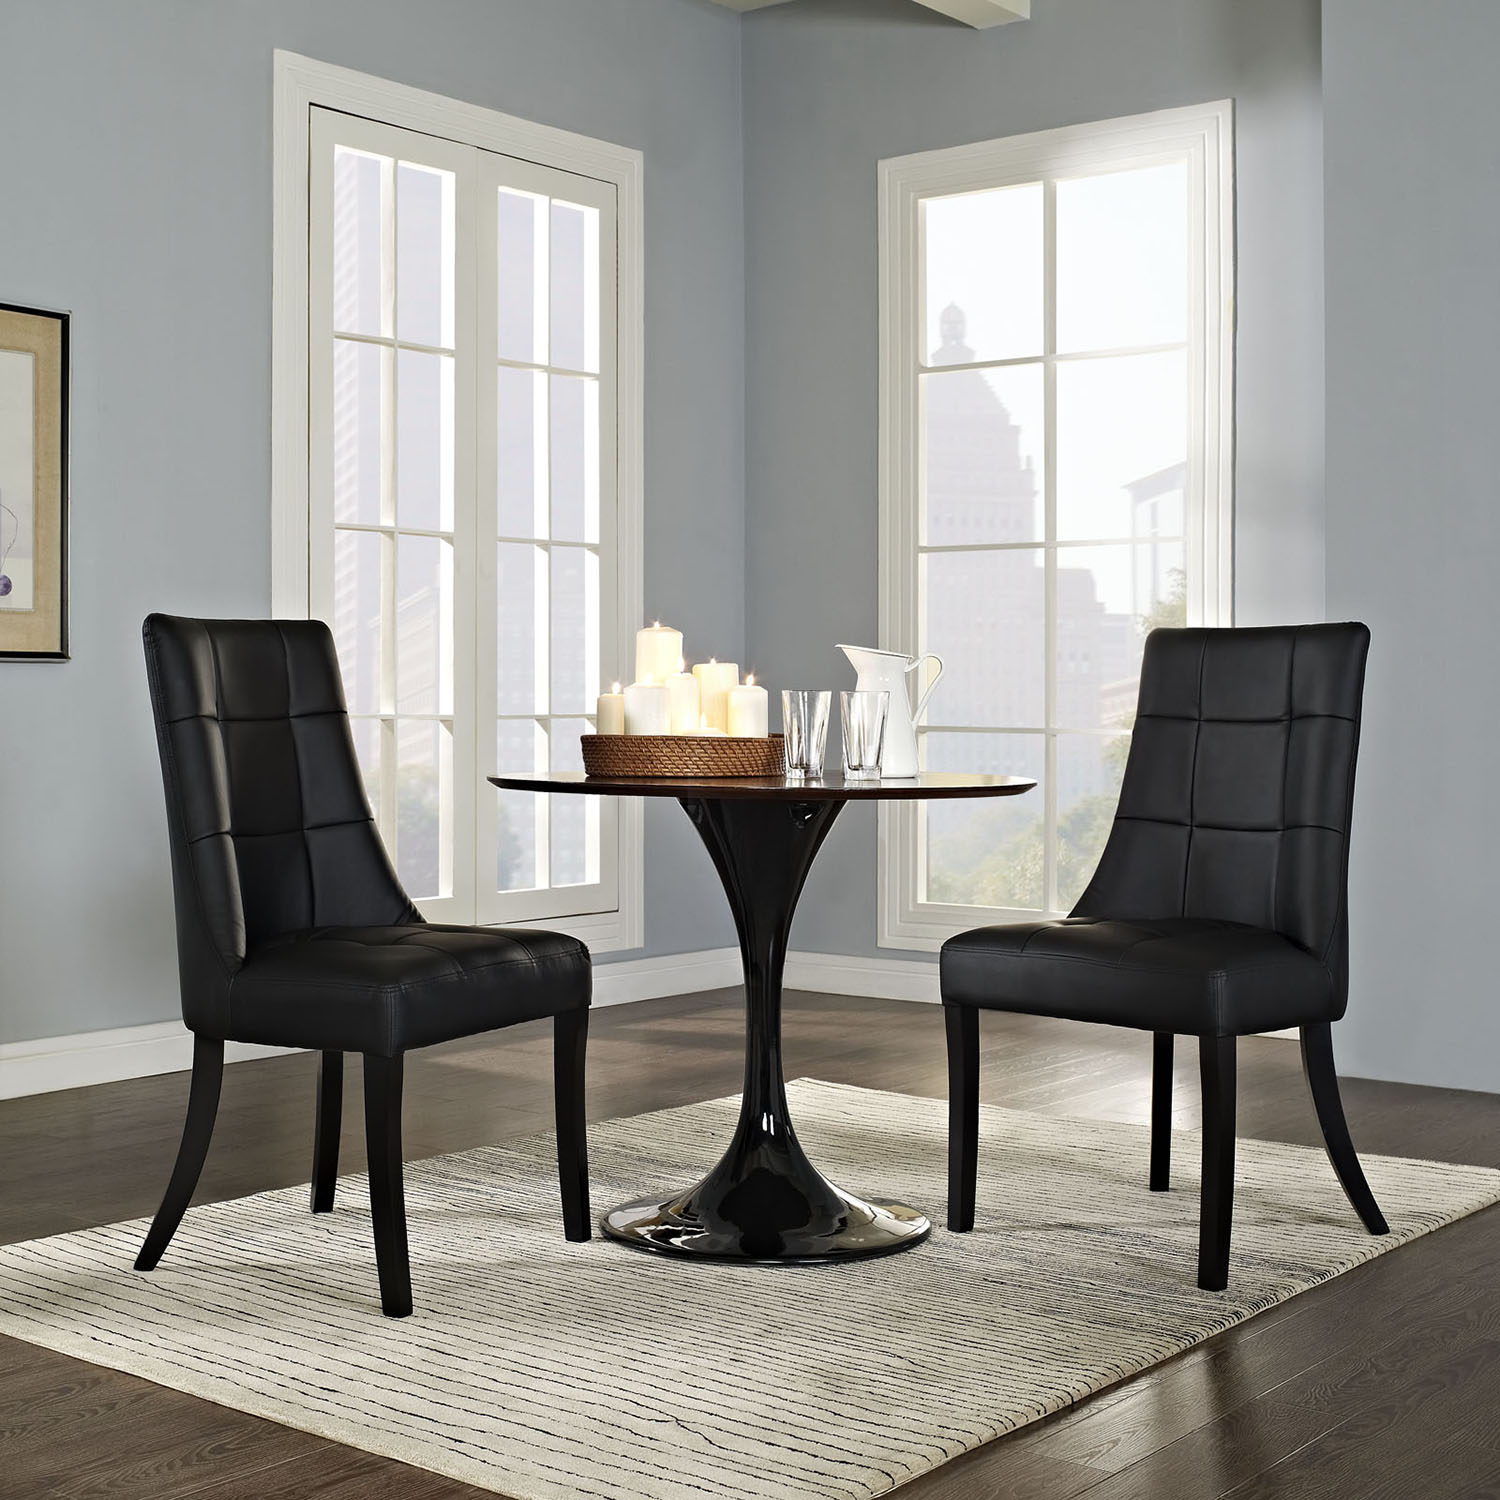 Noblesse Leatherette Dining Chair - Black (Set of 2) - EEI-1298-BLK